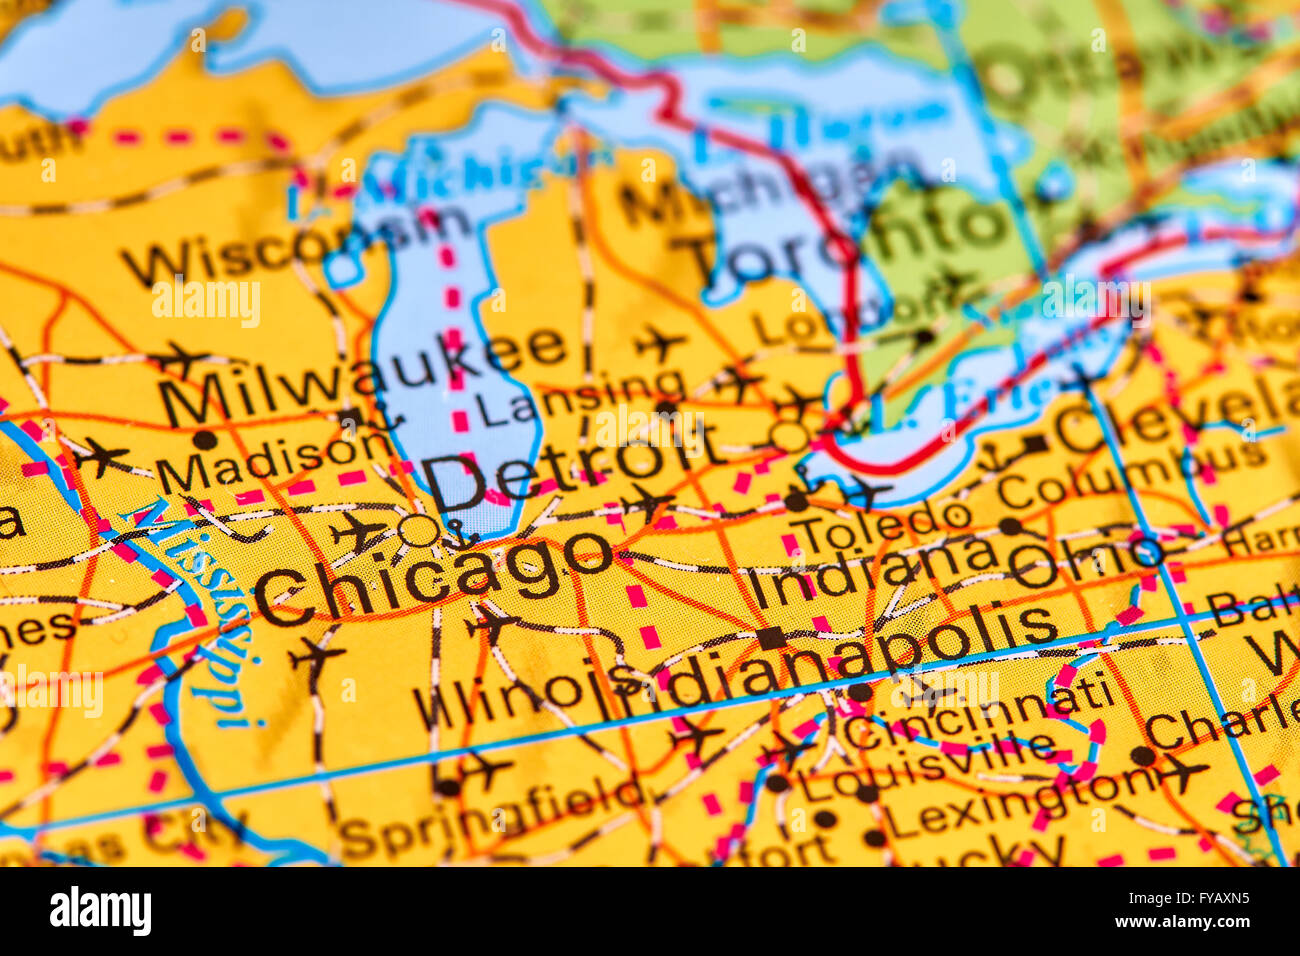 Chicago City in USA on the World Map Stock Photo Royalty Free